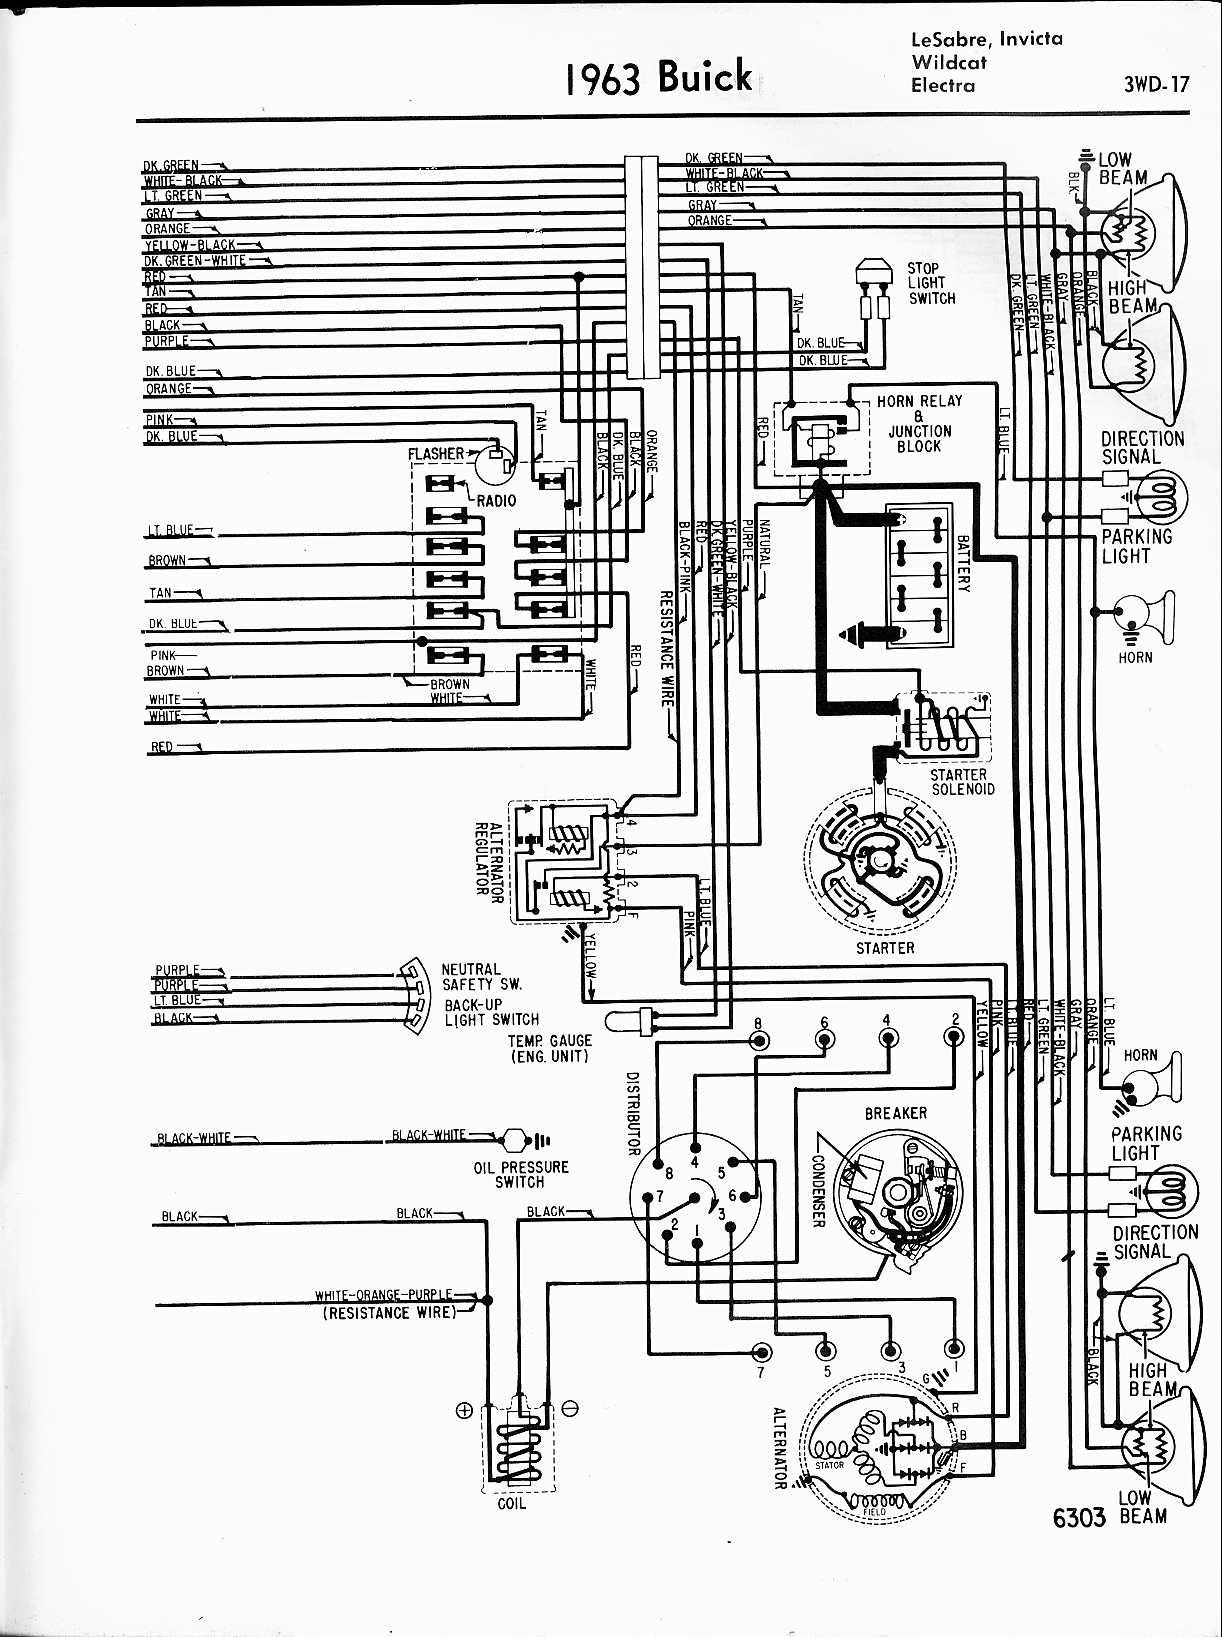 Buick Wiring Diagrams 1957 1965 2000 Century Diagram 1963 Lesabre Lnvicta Wildcat Electra Right Half